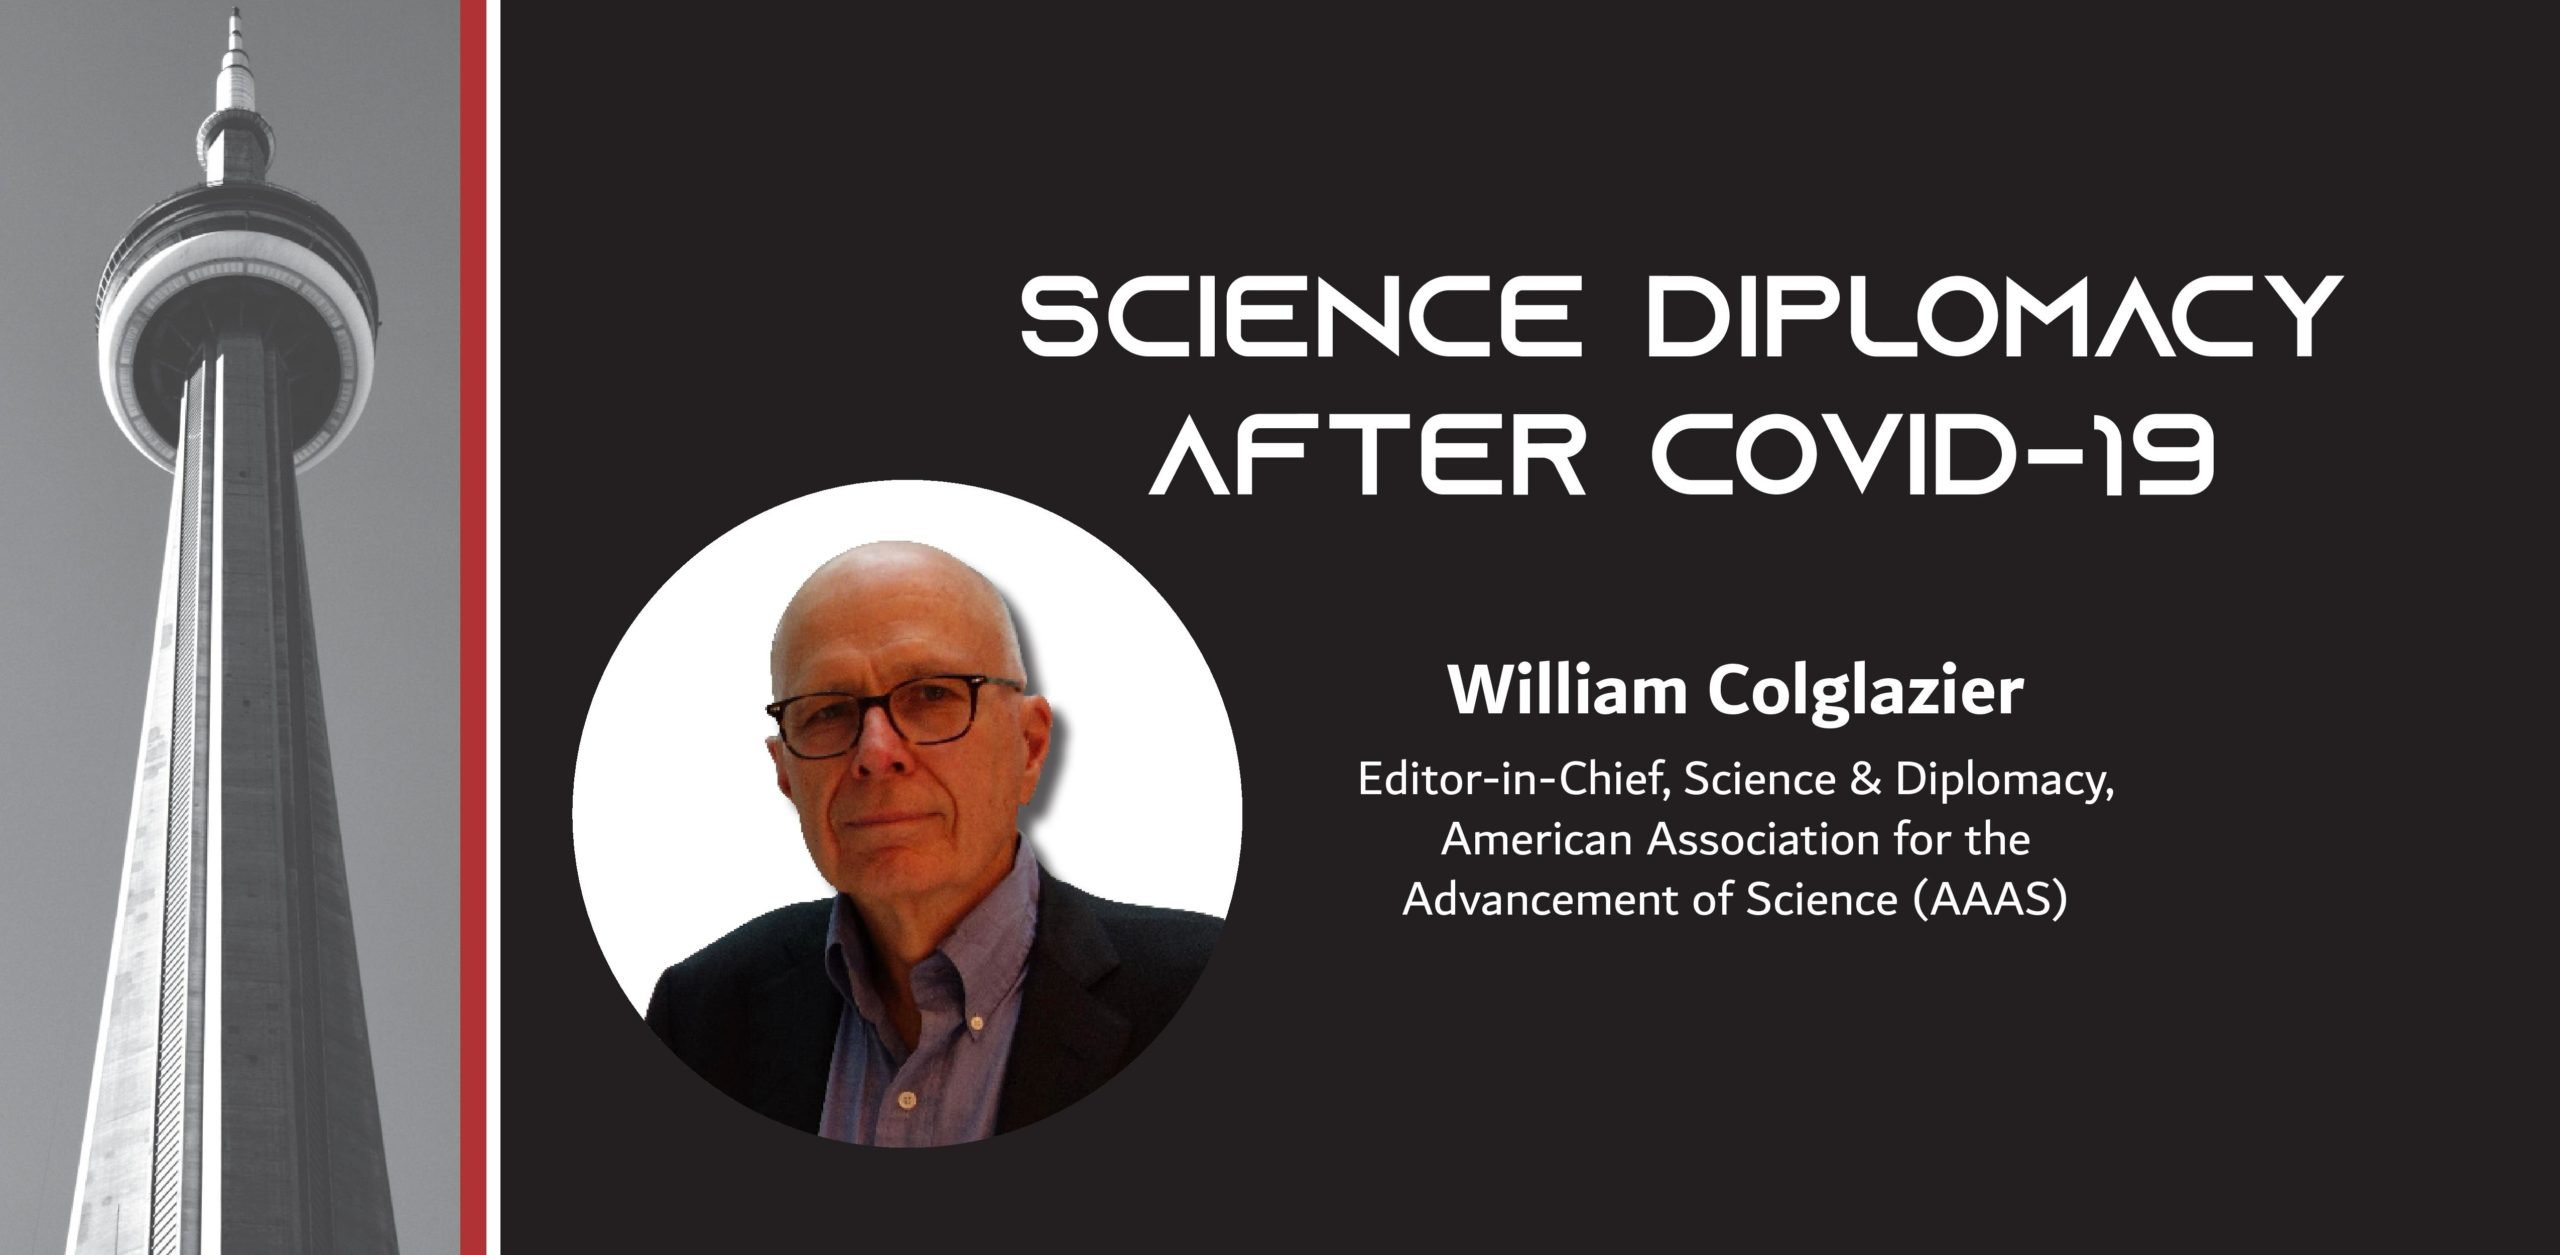 Picture of a man on a black background wiht the text: Science Diplomacy After COVID-19 E. William Colglazier Editor-in-Chief, Science & Diplomacy, American Association for the Advancement of Science (AAAS)